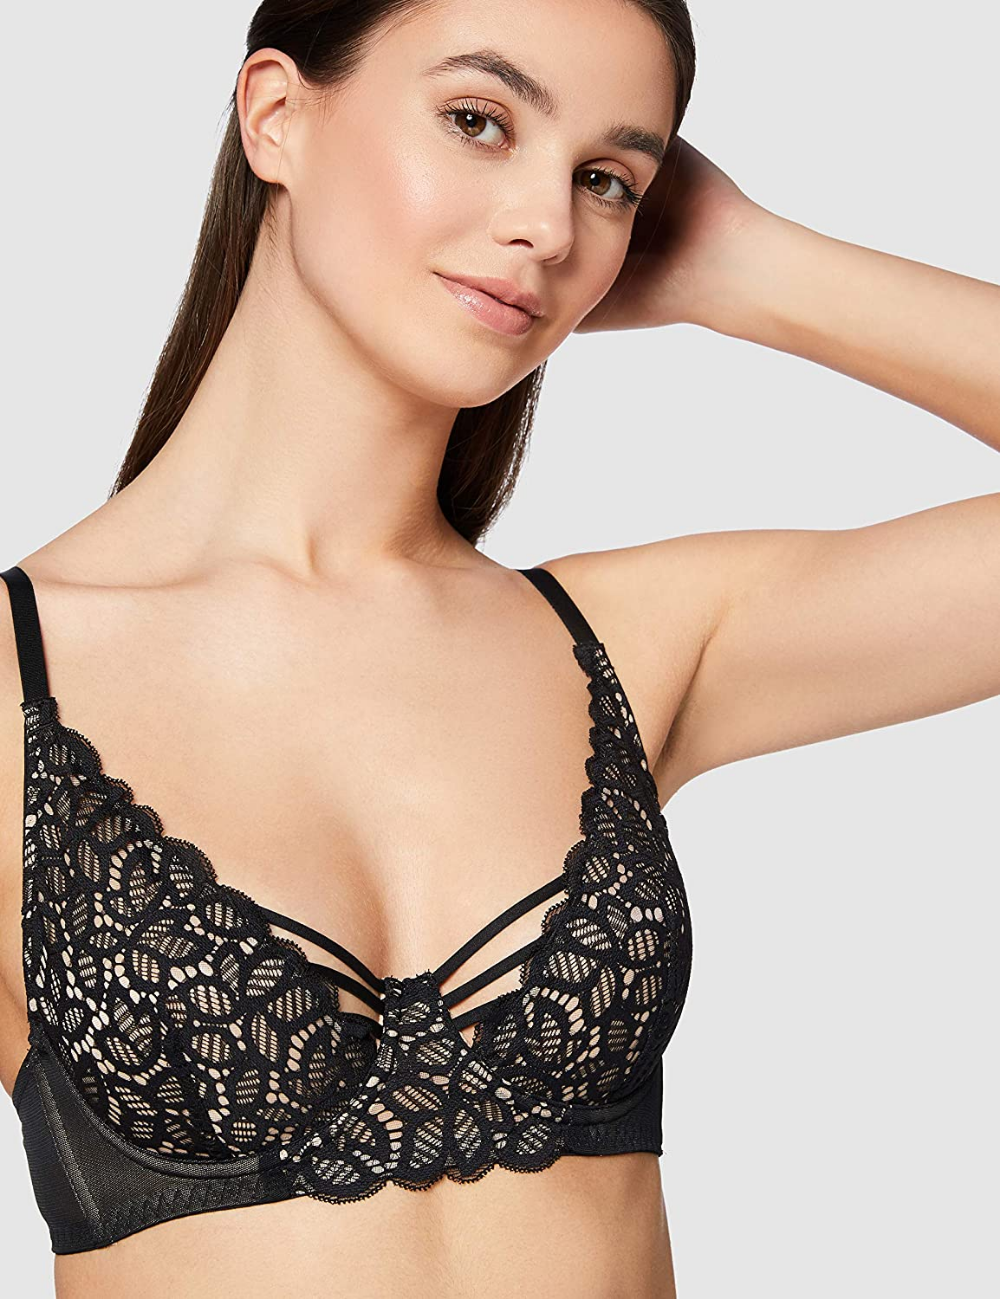 Brand Iris /& Lilly Womens Bra with Moulded Cups